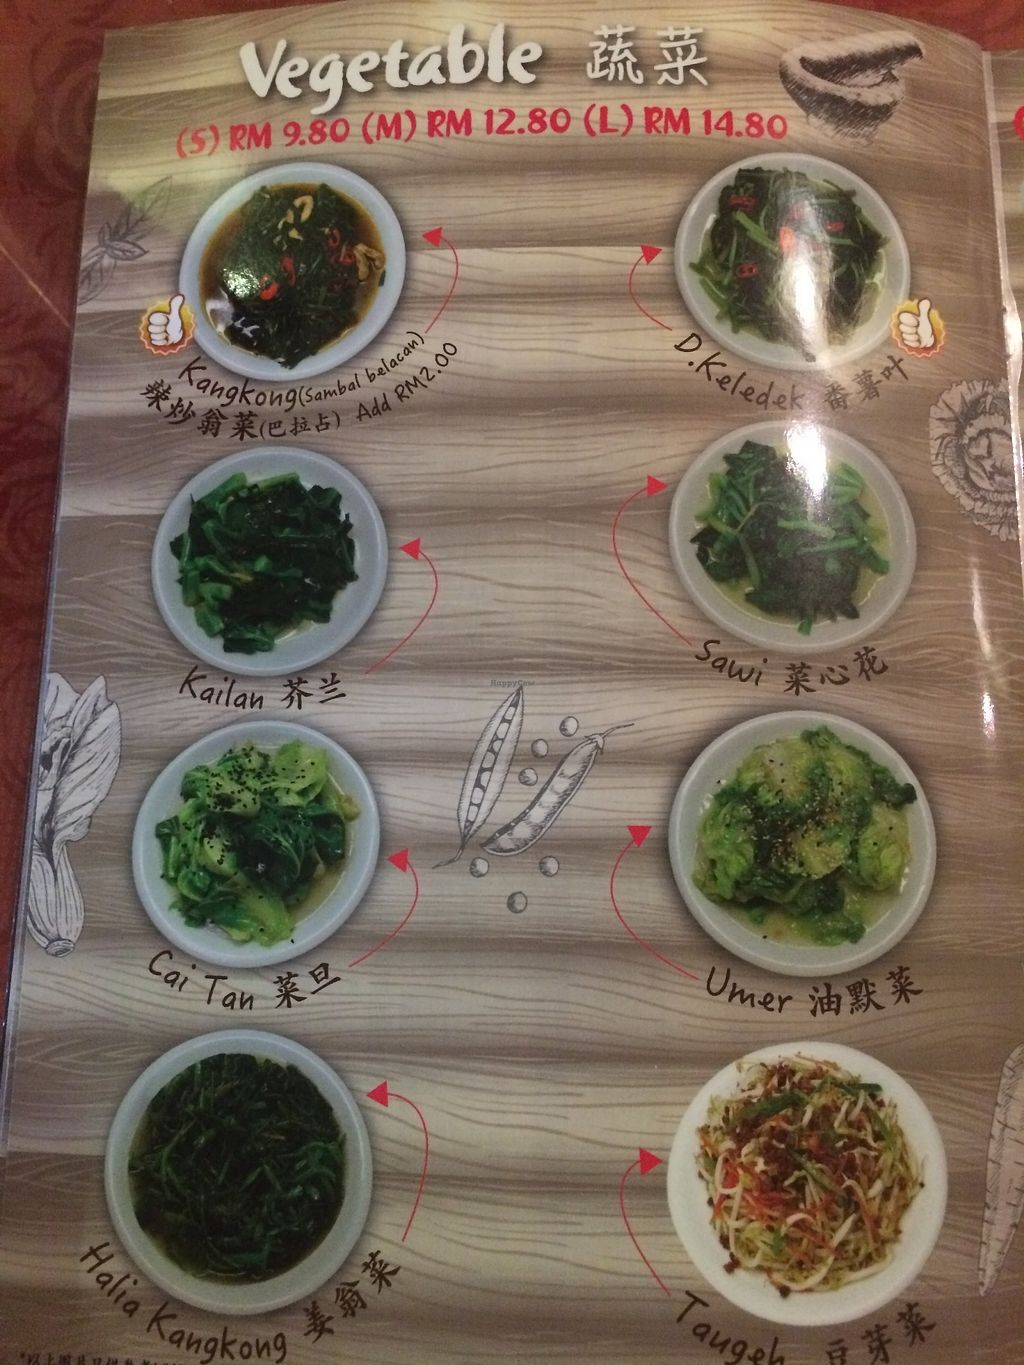 "Photo of Kampung Vege  by <a href=""/members/profile/LaurenceMontreuil"">LaurenceMontreuil</a> <br/>menu <br/> March 12, 2018  - <a href='/contact/abuse/image/63899/369586'>Report</a>"